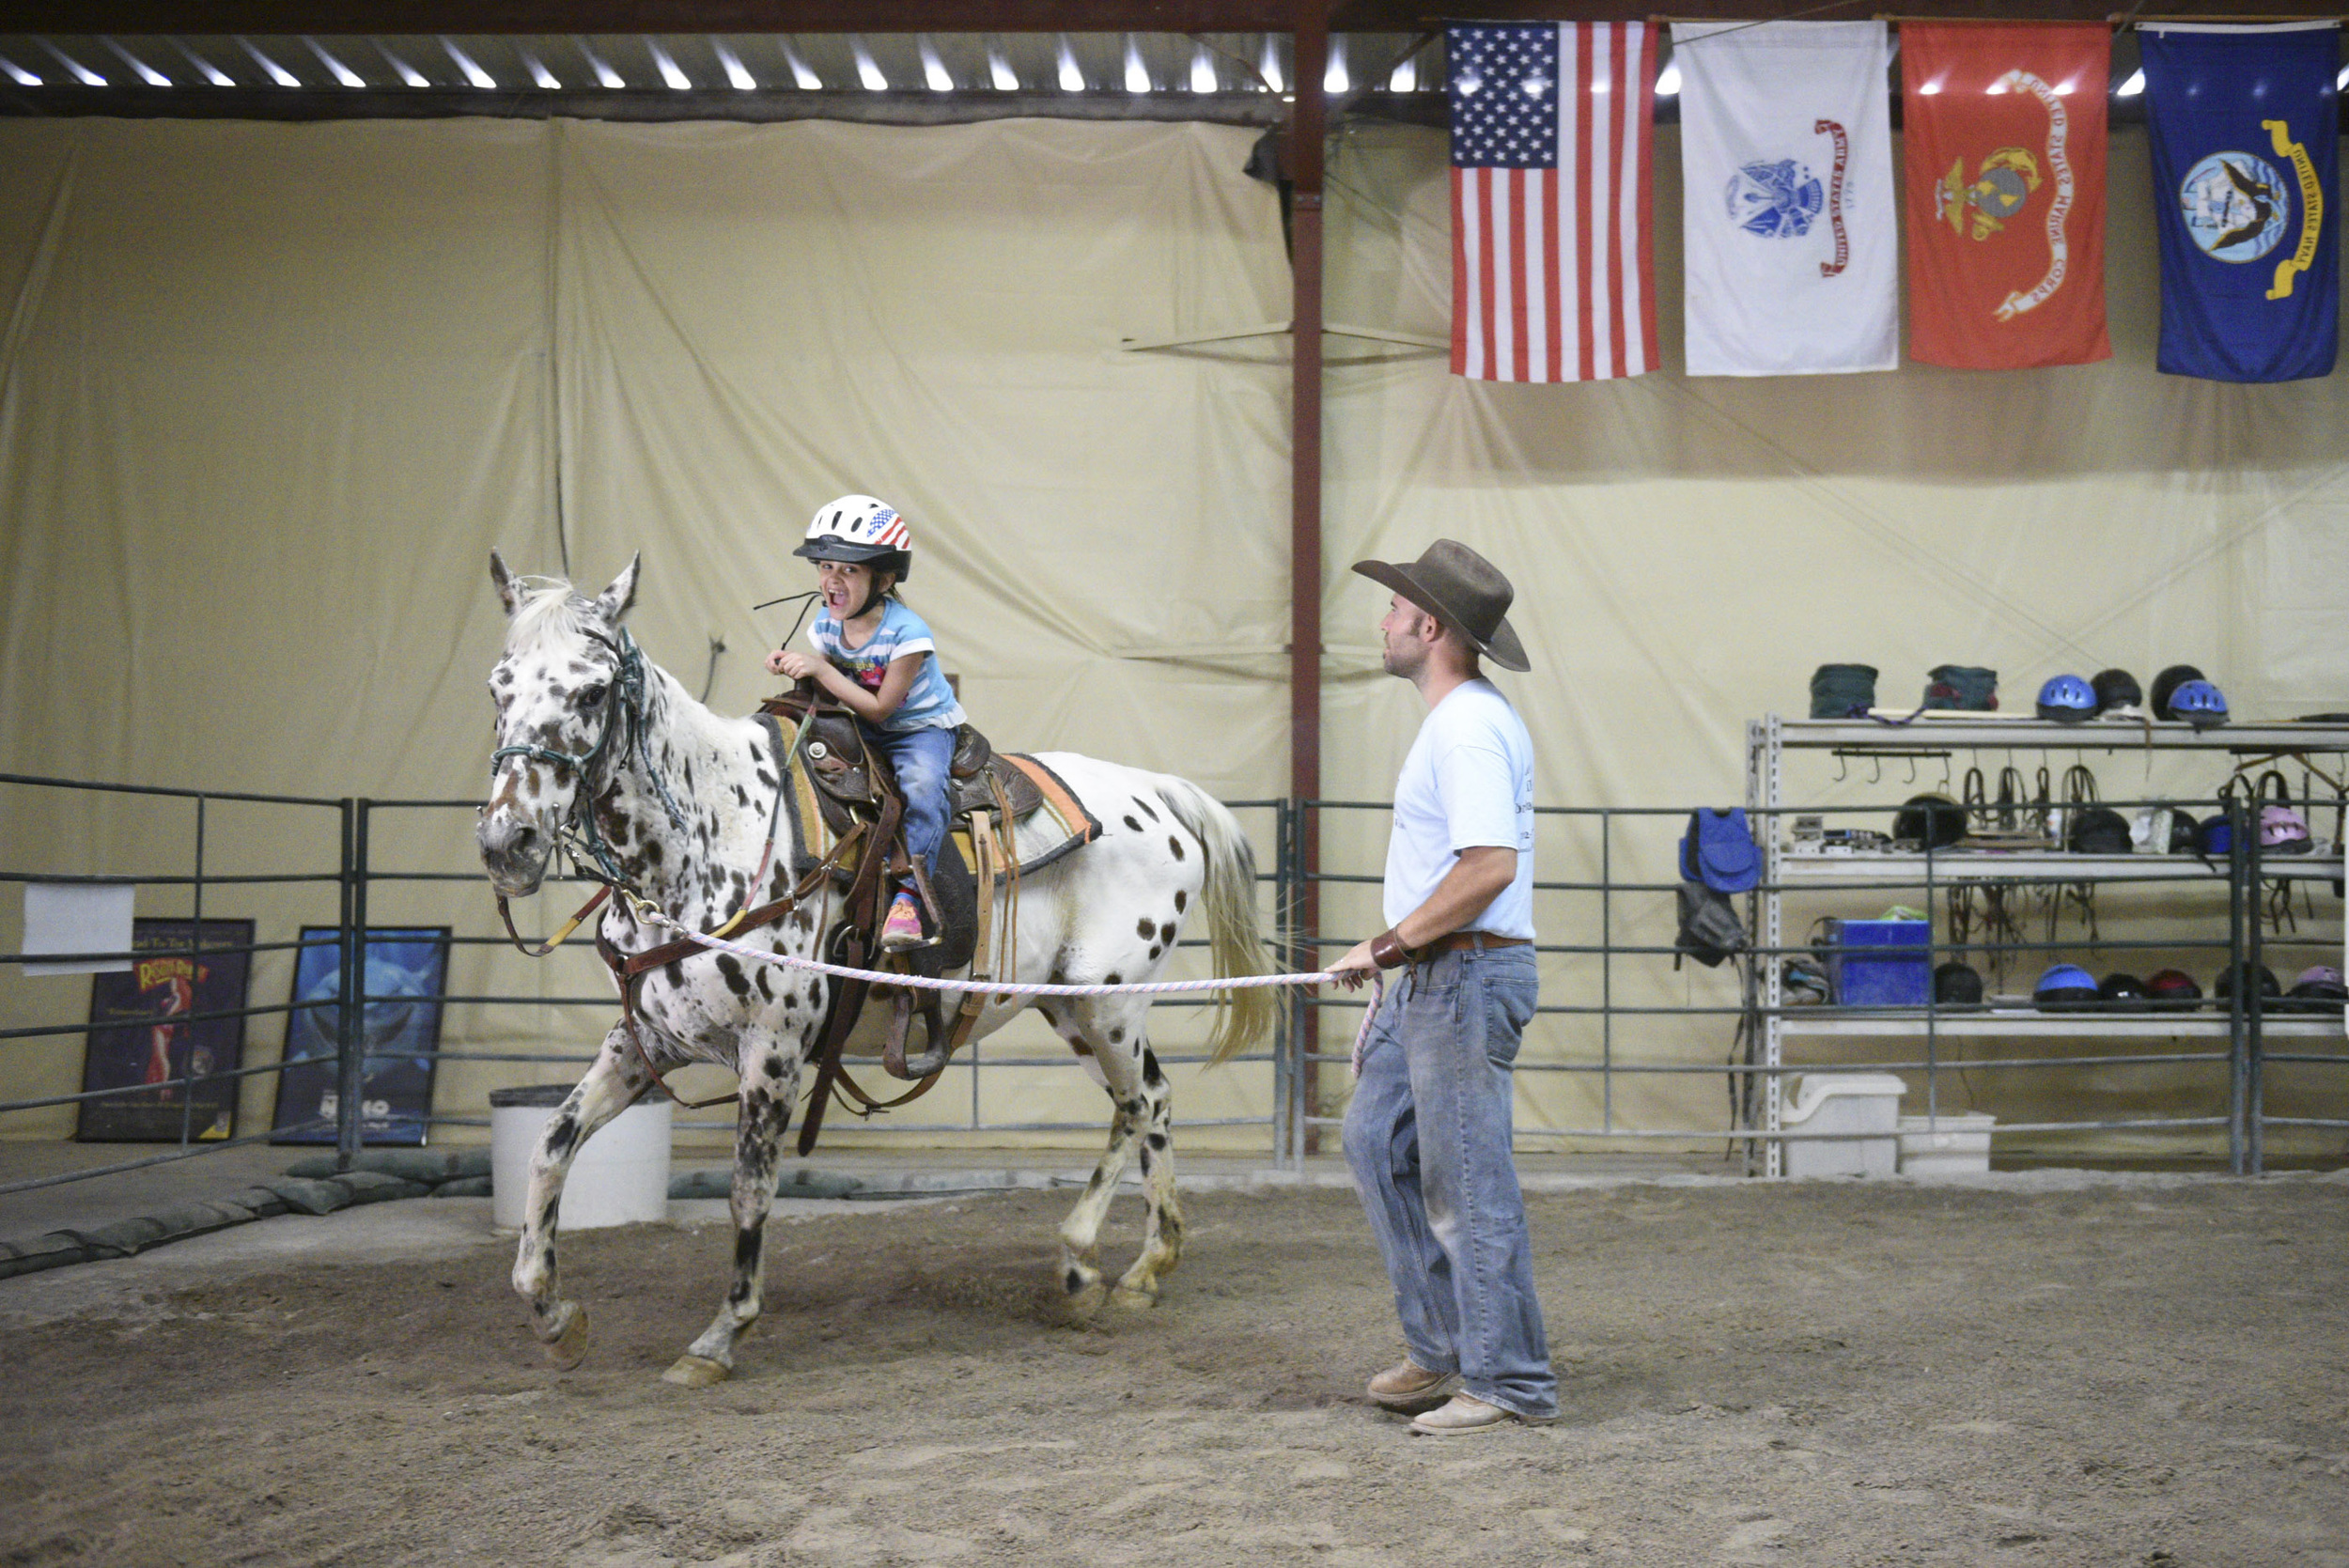 Horse Assisted Therapy (HAT) participant, Sophia Nola Hudig, 7, left, and Paul Rogers, owner of Paradise Ranch in Las Vegas, take Pocahontas for a trot, Wednesday, June 3, 2015. Hudig, who has been diagnosed with autism and ADHD, has been part of the Ranch's HAT program on a scholarship for three years. (Jason Ogulnik/Las Vegas Review-Journal)